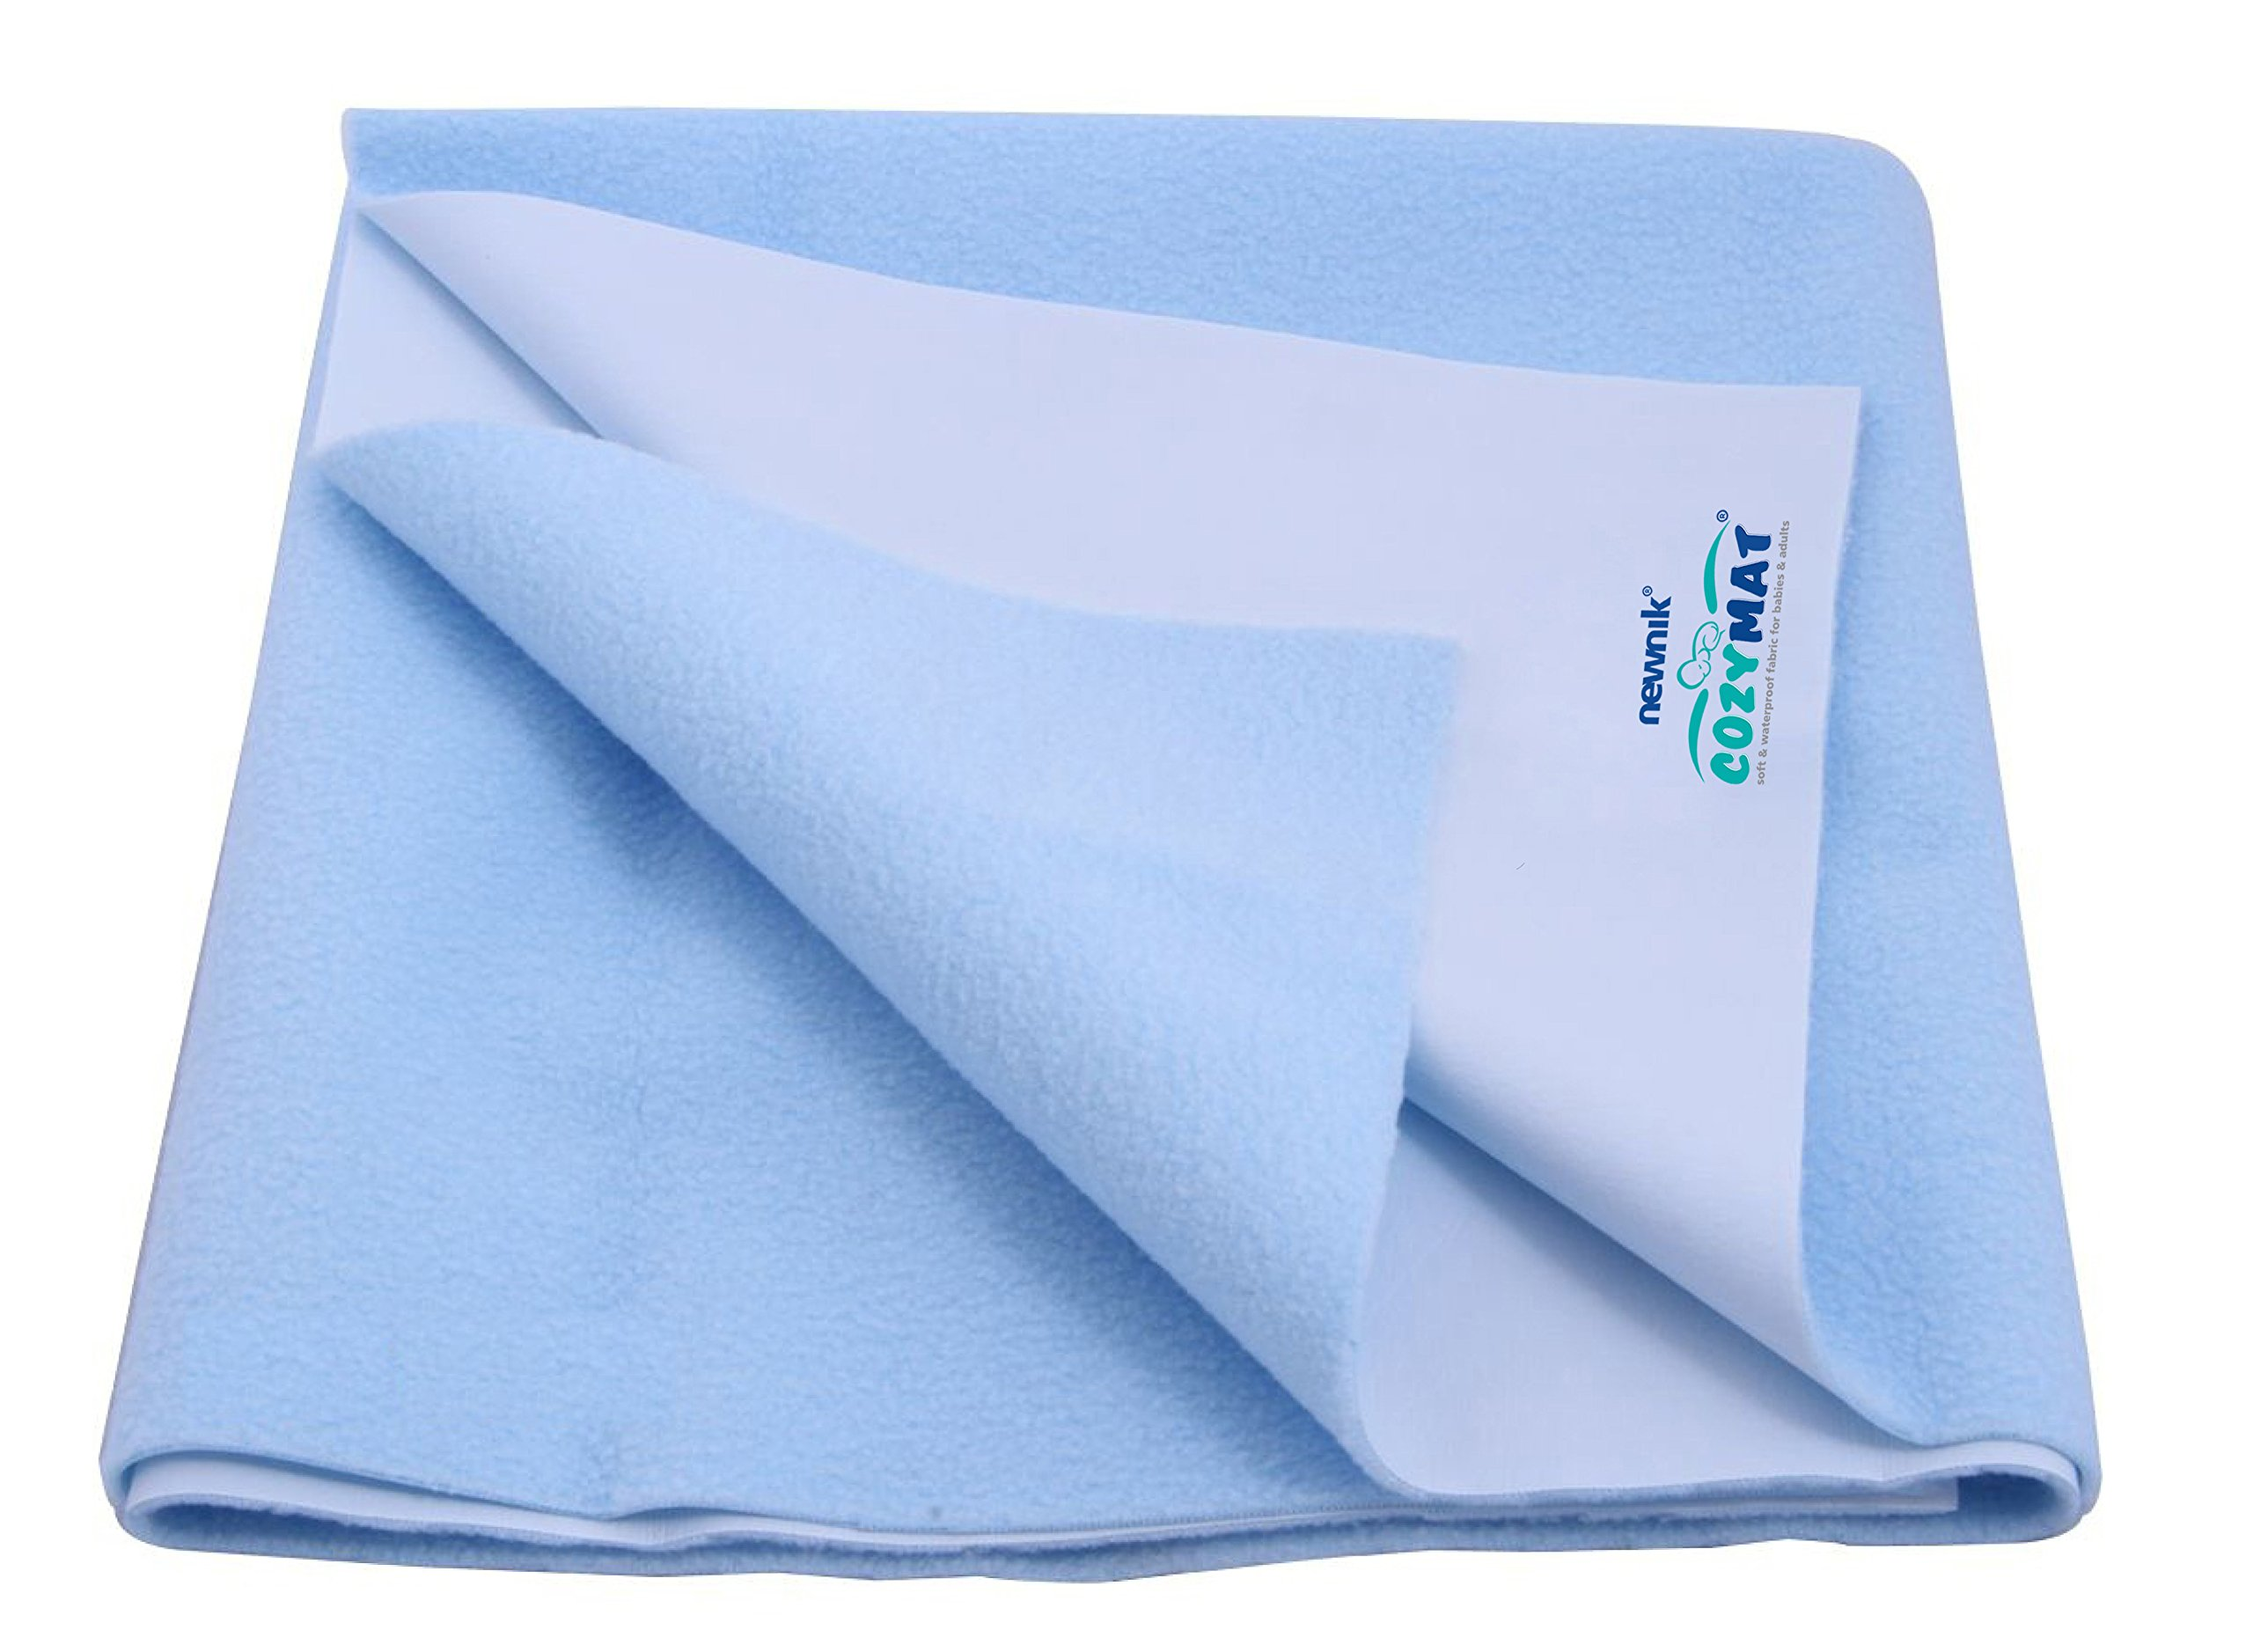 Cozymat Dry Sheet Waterproof Breathable Bed Protector (Size: 70cm X 100cm) Sky Blue, Medium by cozymat